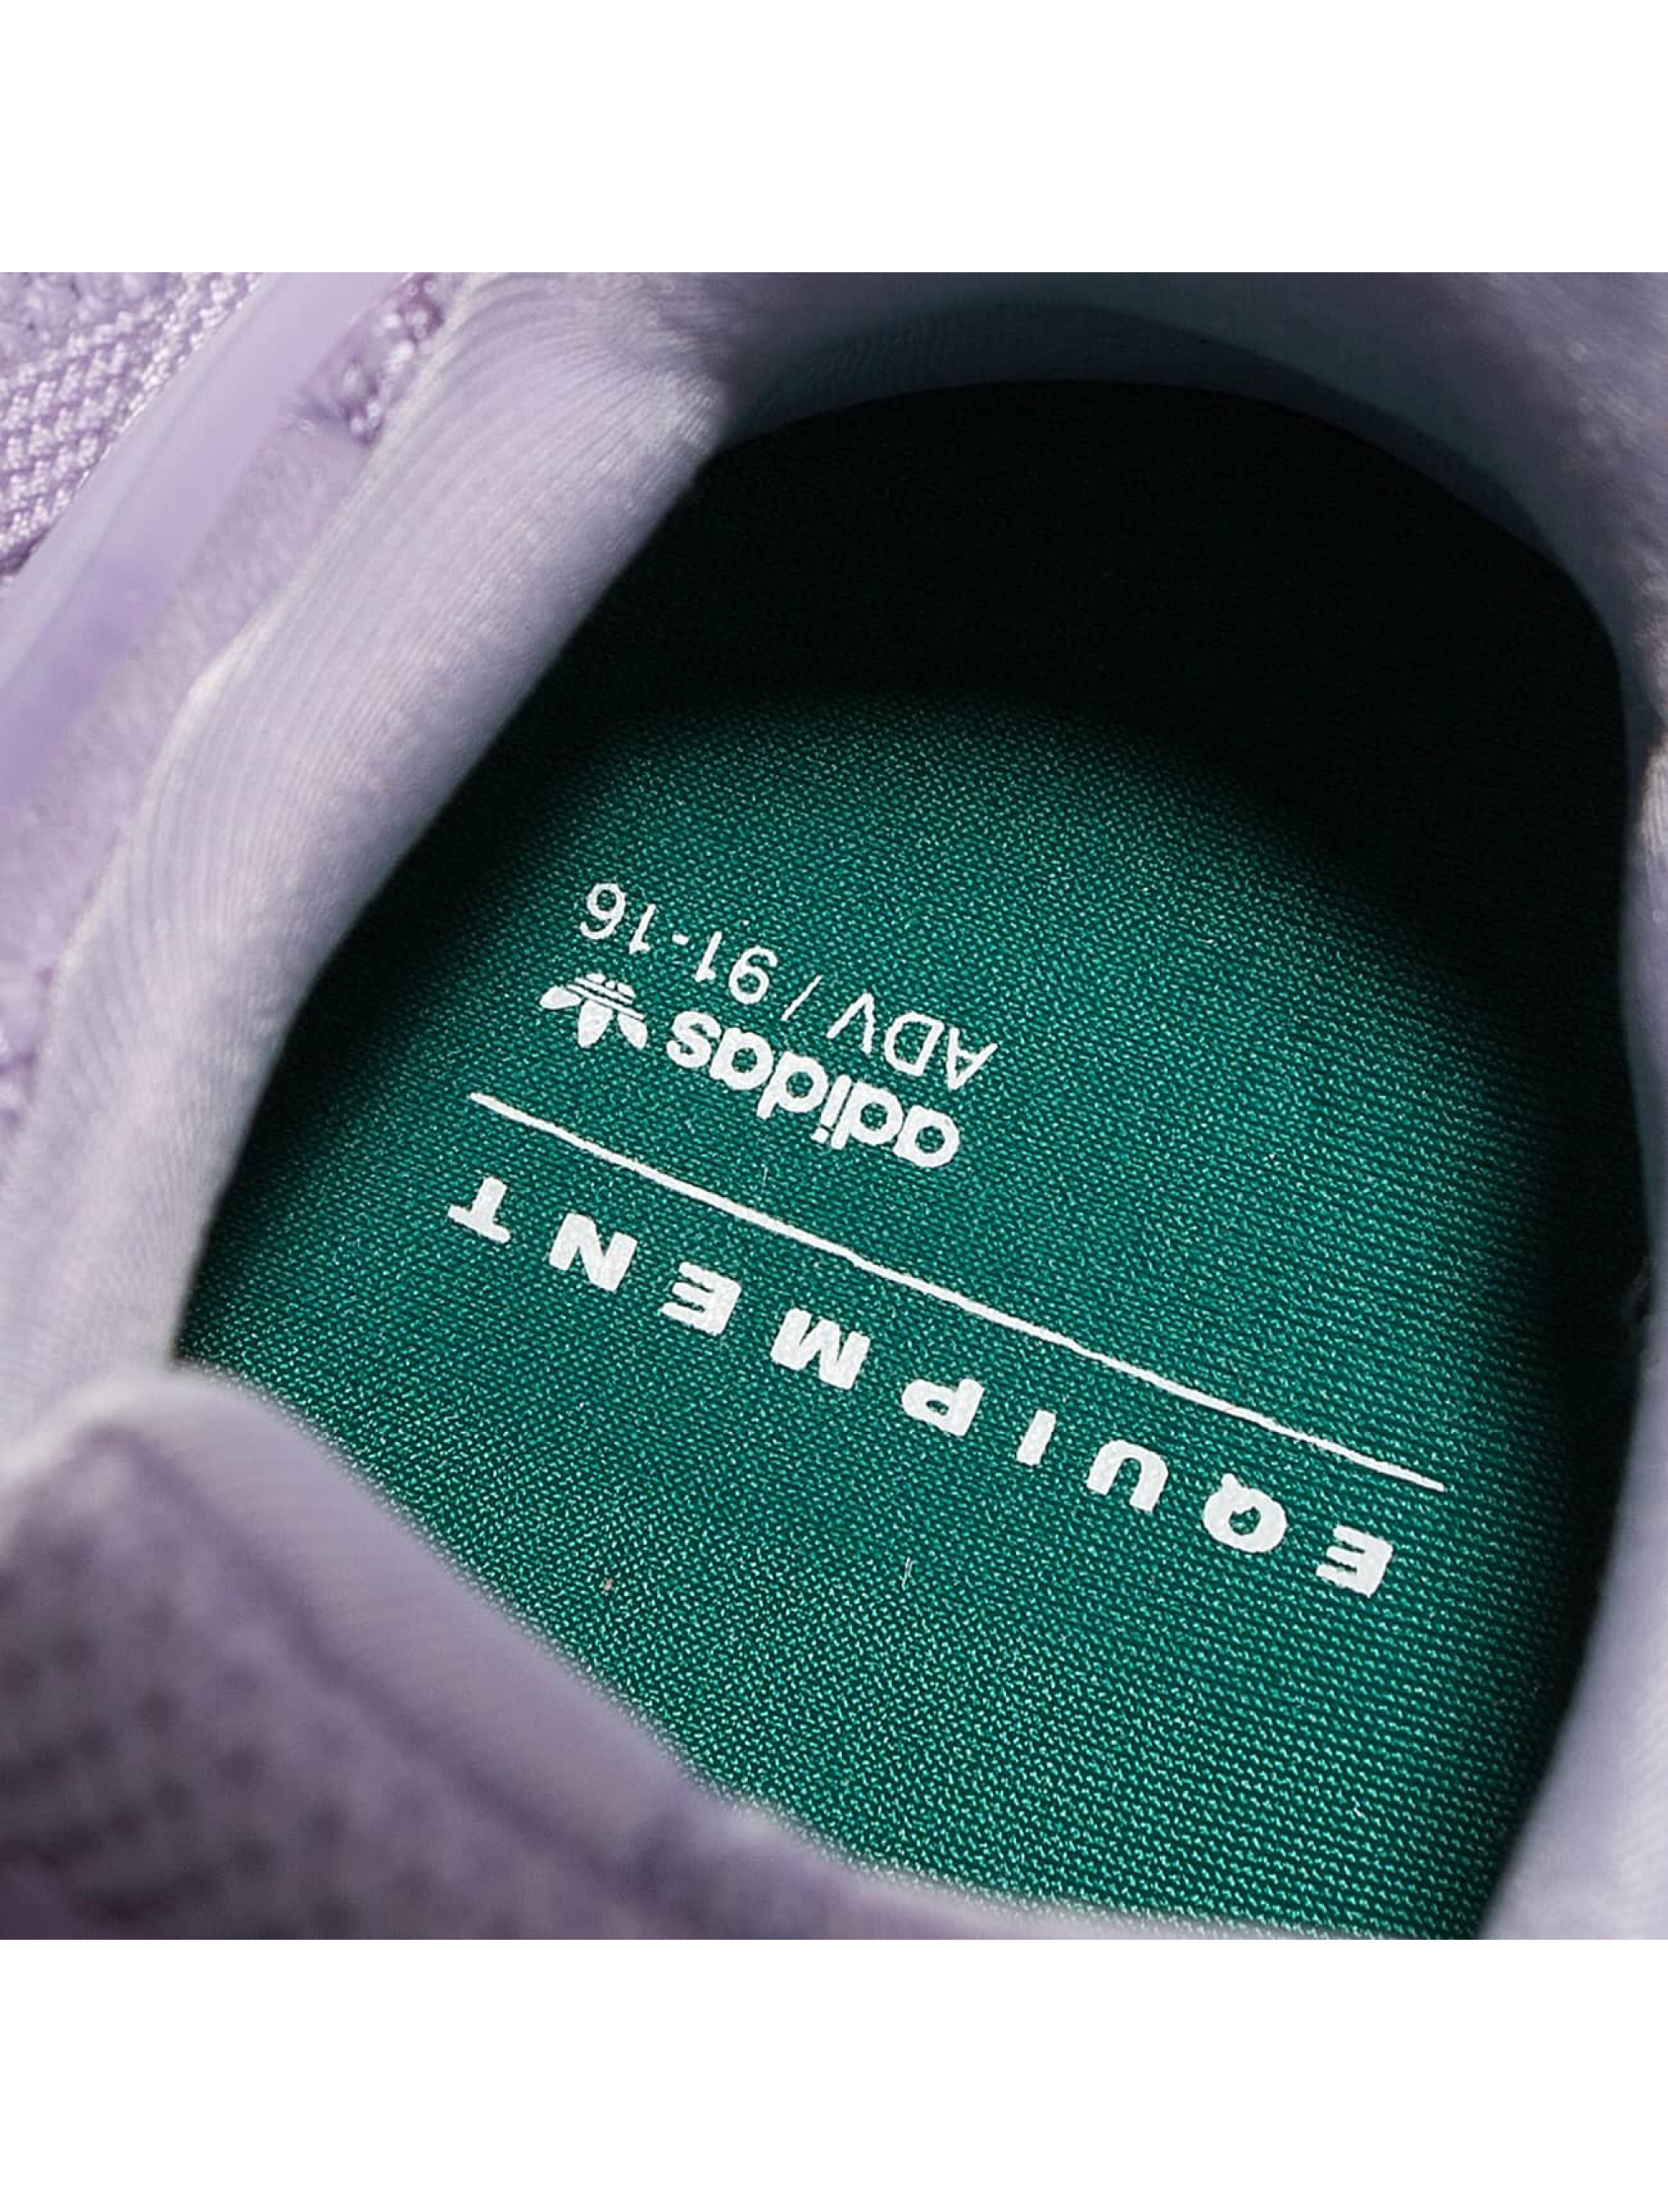 adidas Sneakers Equipment Support ADV fioletowy